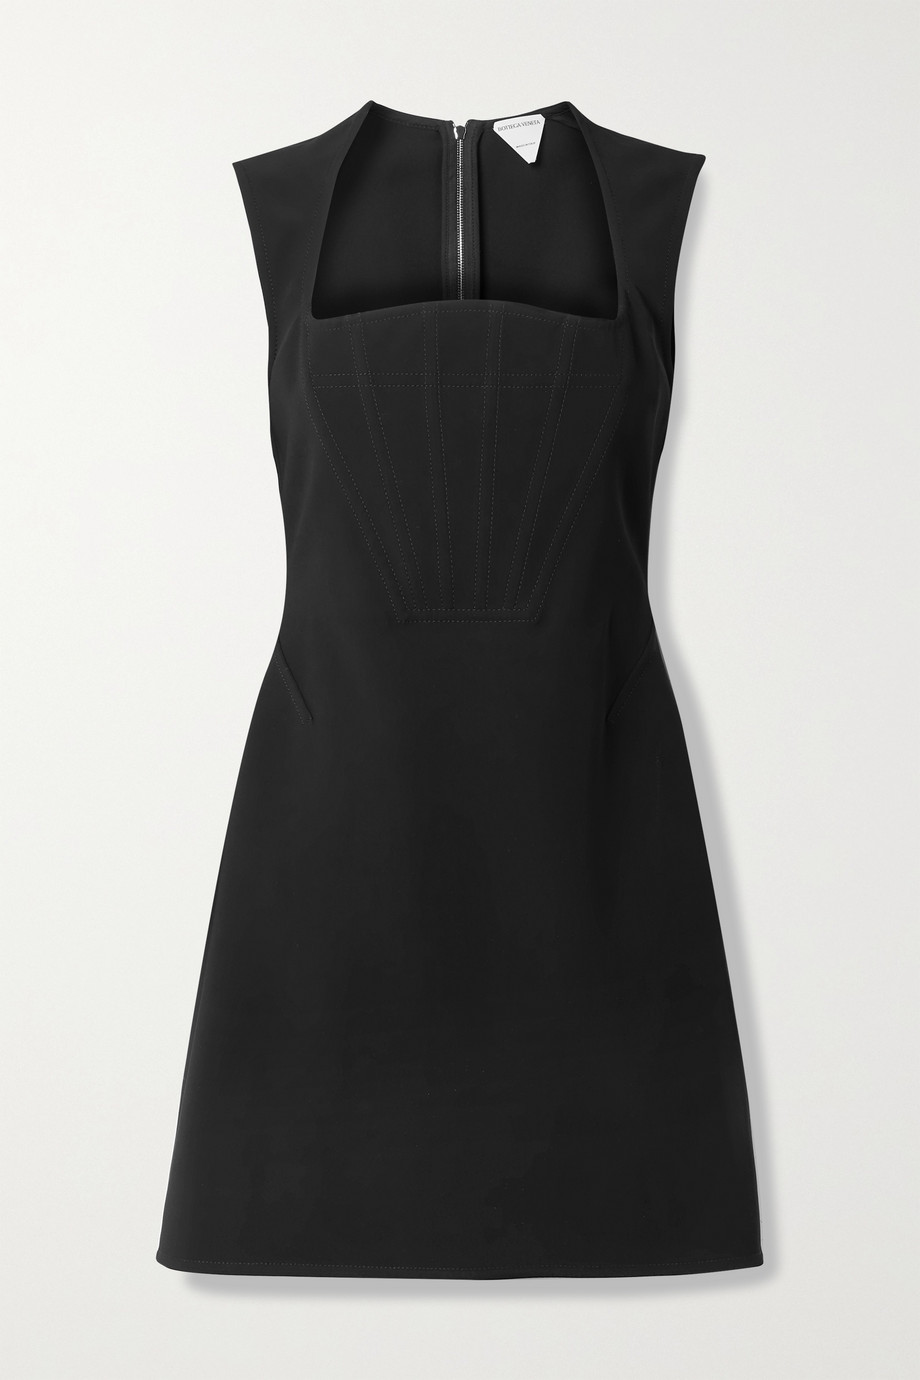 BOTTEGA VENETA Cady mini dress